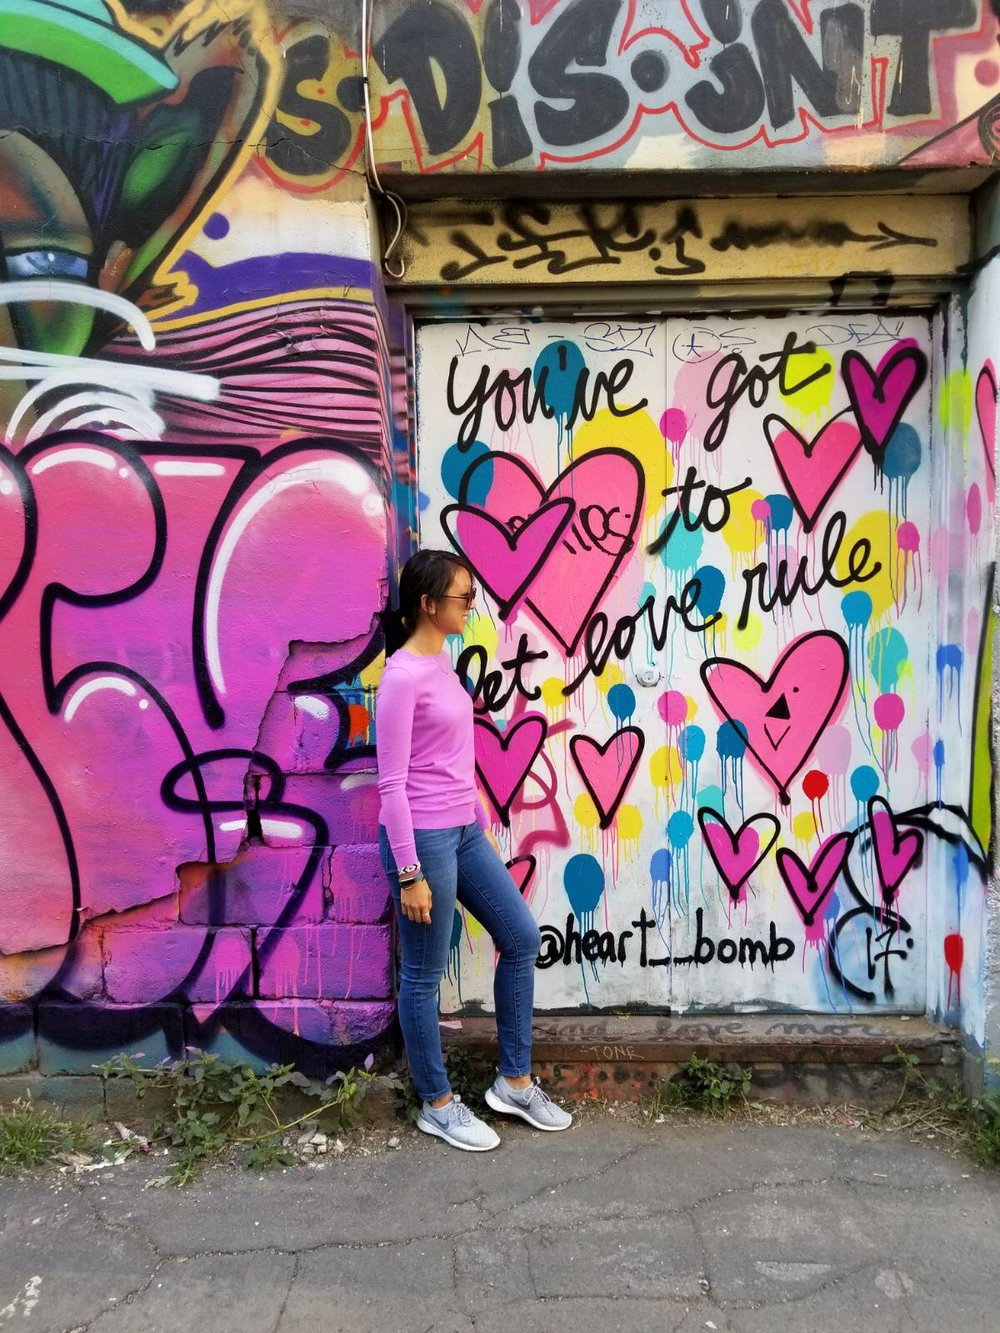 Let's pick up where I left off in my  first installment  of our Toronto trip. Now that we've covered all the good eats, let's talk about sites to see, things to do and places to shop! If you have a chance, swing by Graffiti Alley for some great photo ops in front of colorful street art!